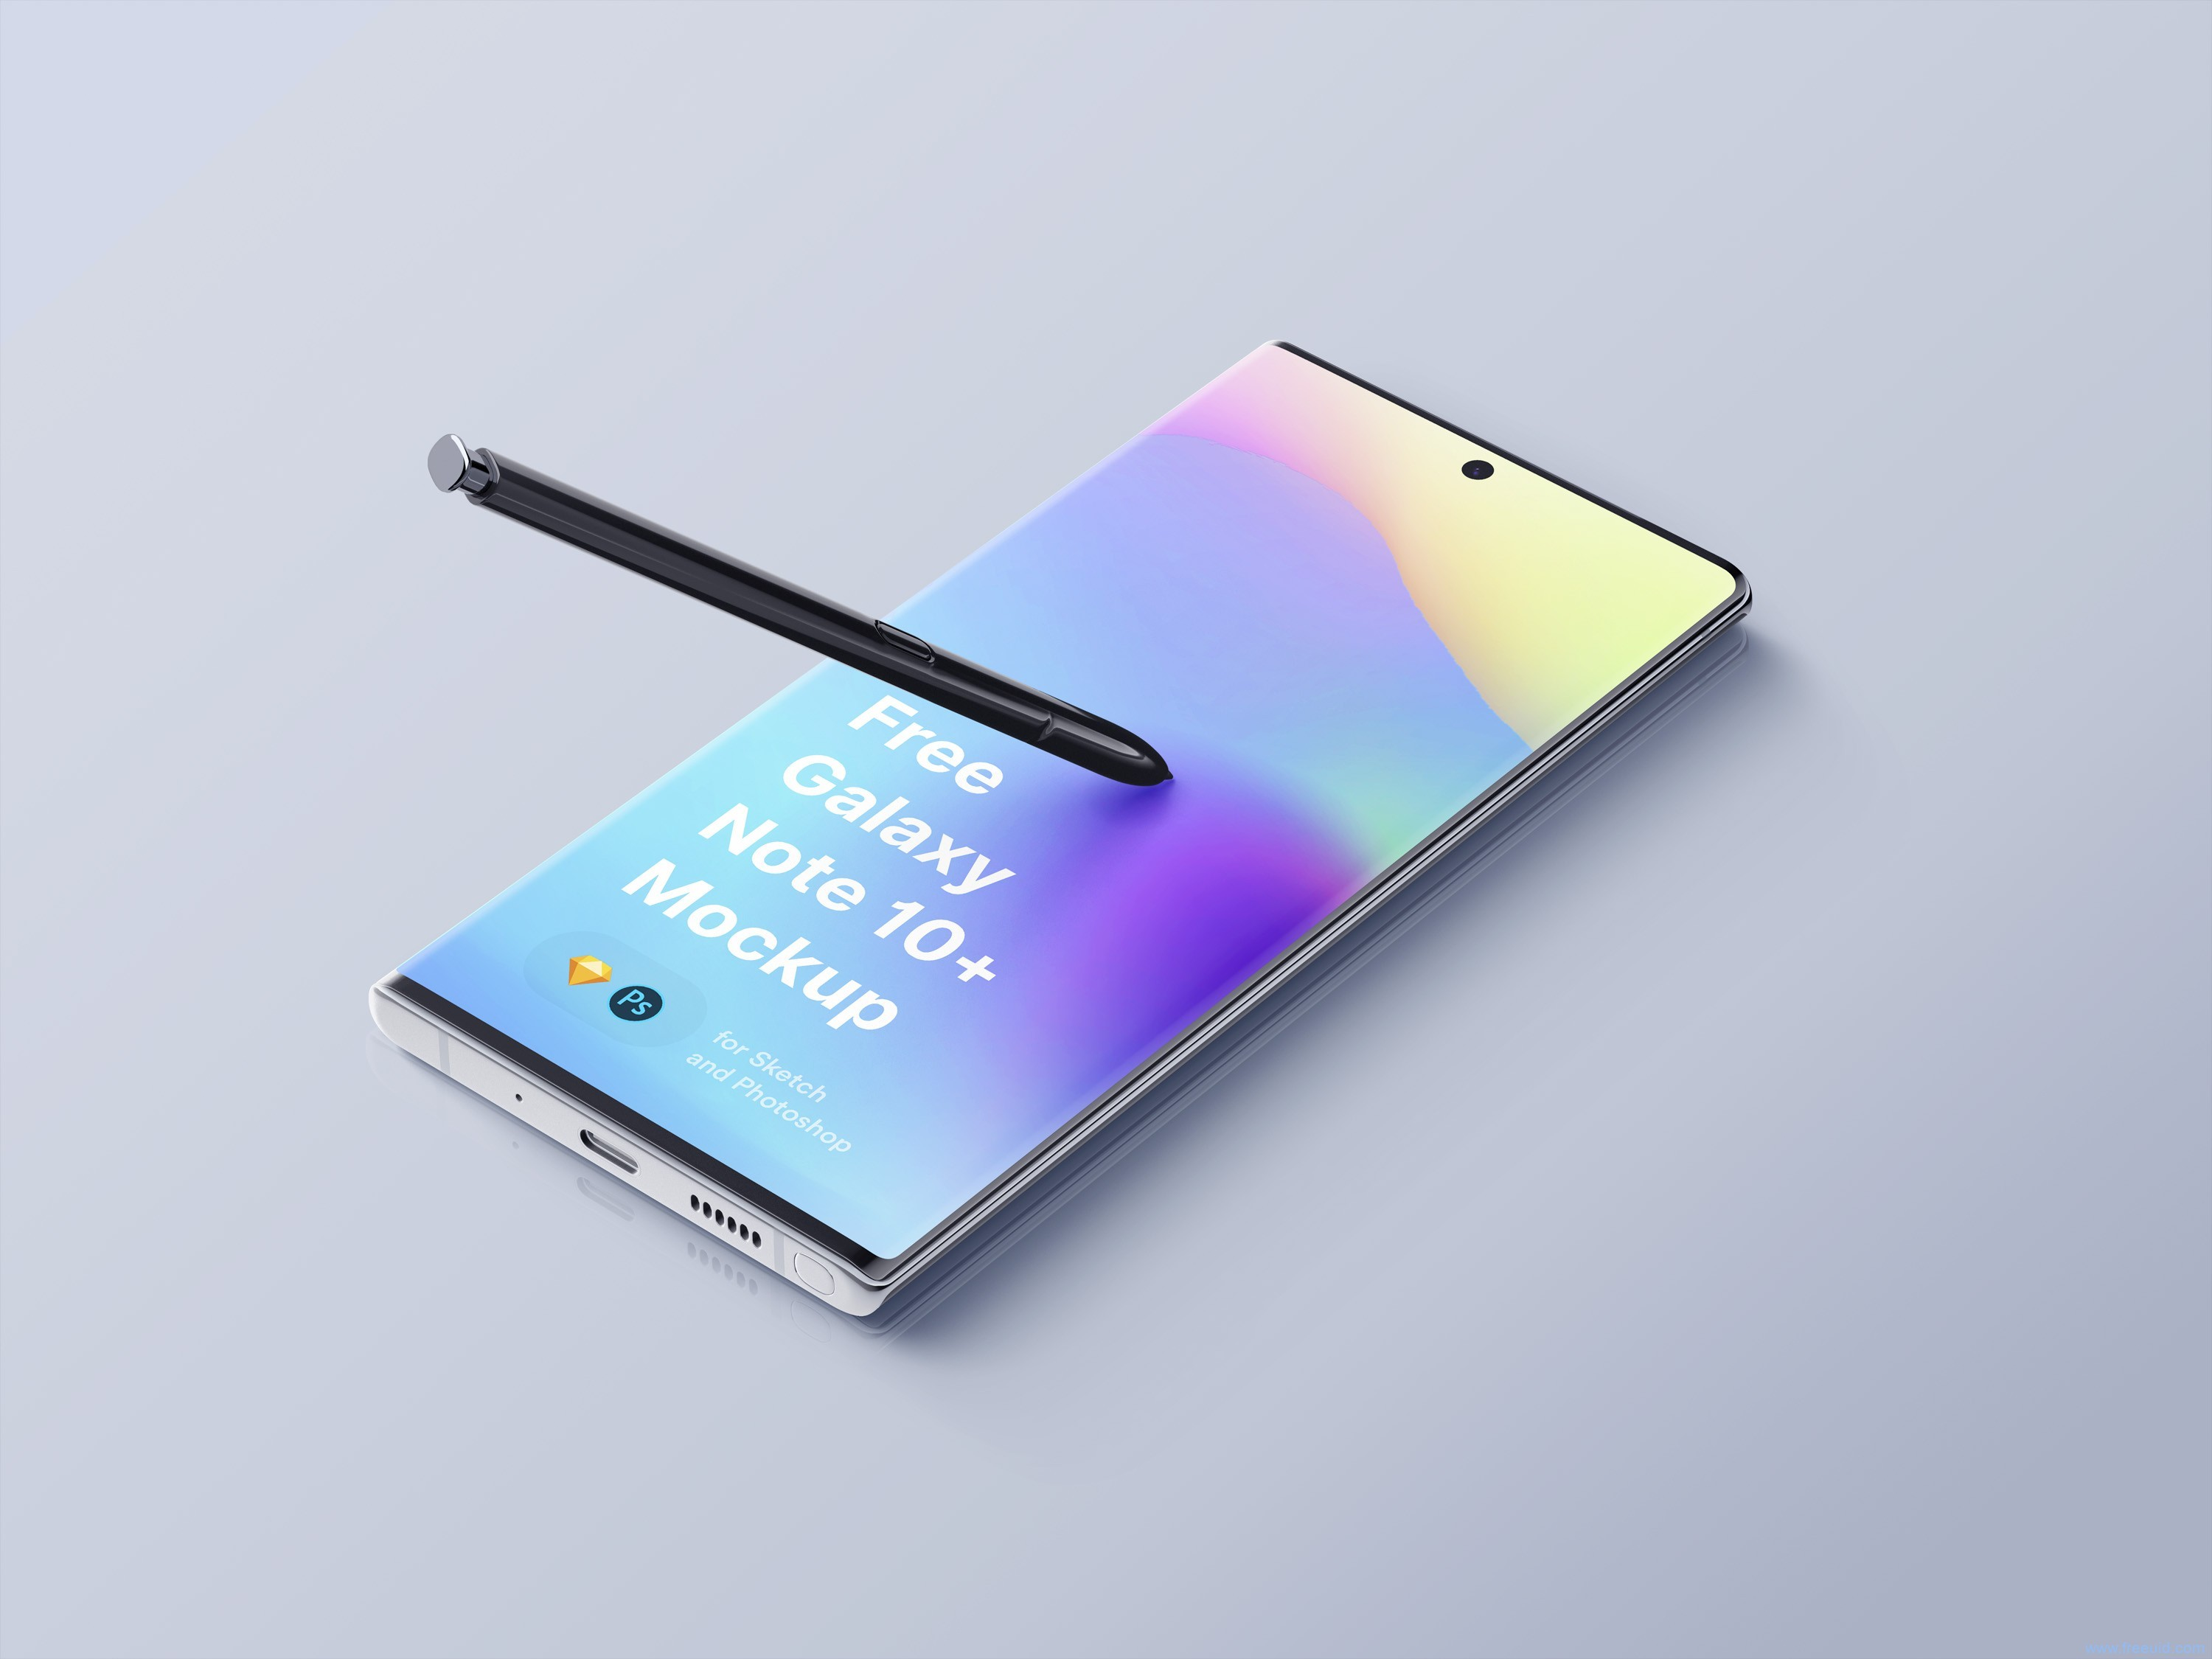 Samsung Galaxy Note 10 Plus Mockup .psd .sketch素材下载